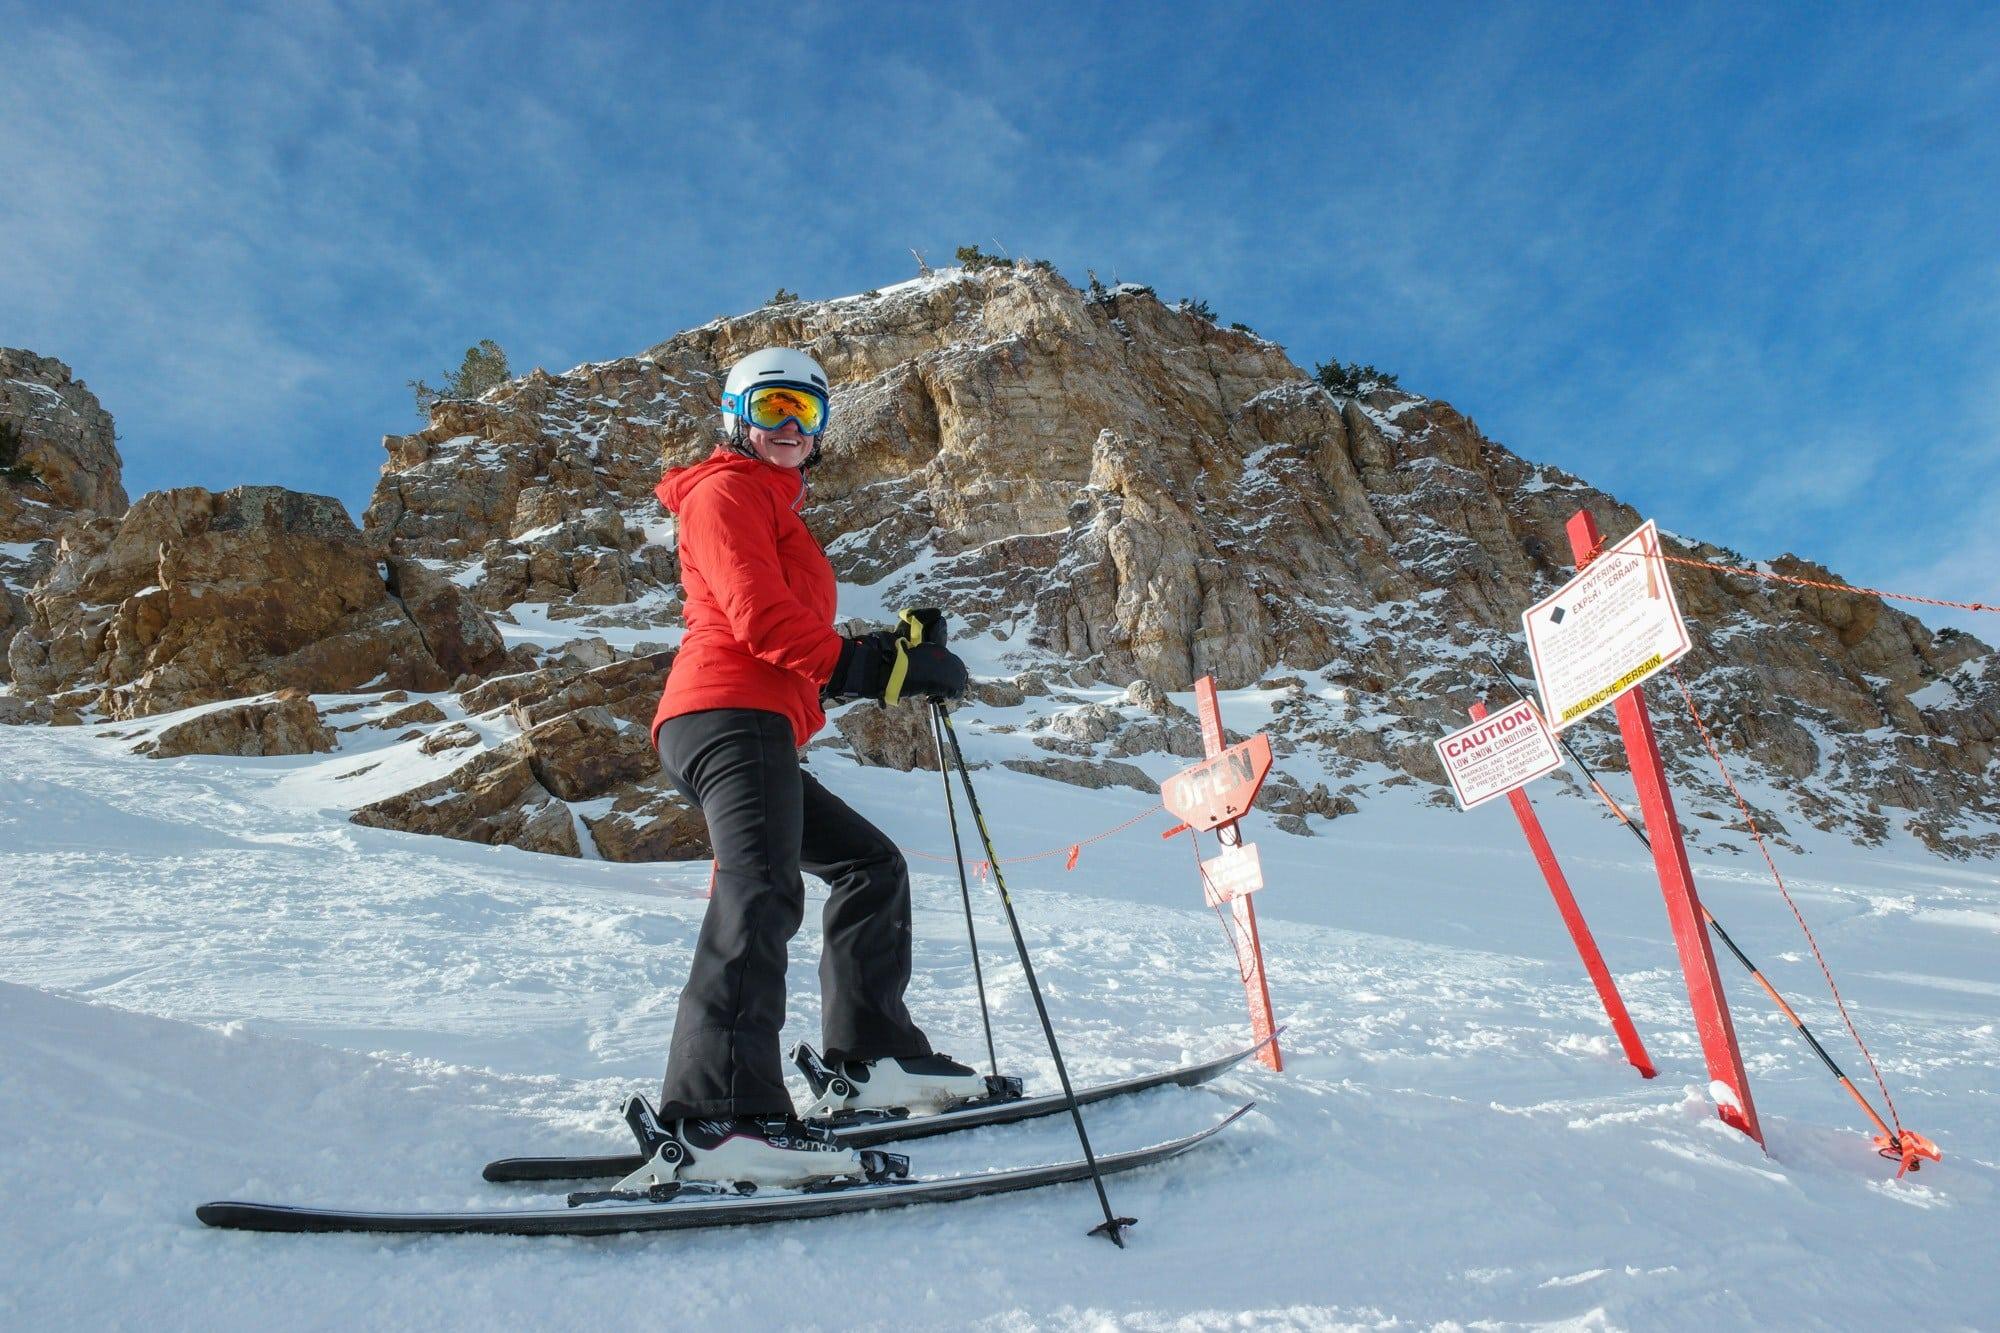 10 Beginner Skier Tips for Adults Learning How to Ski